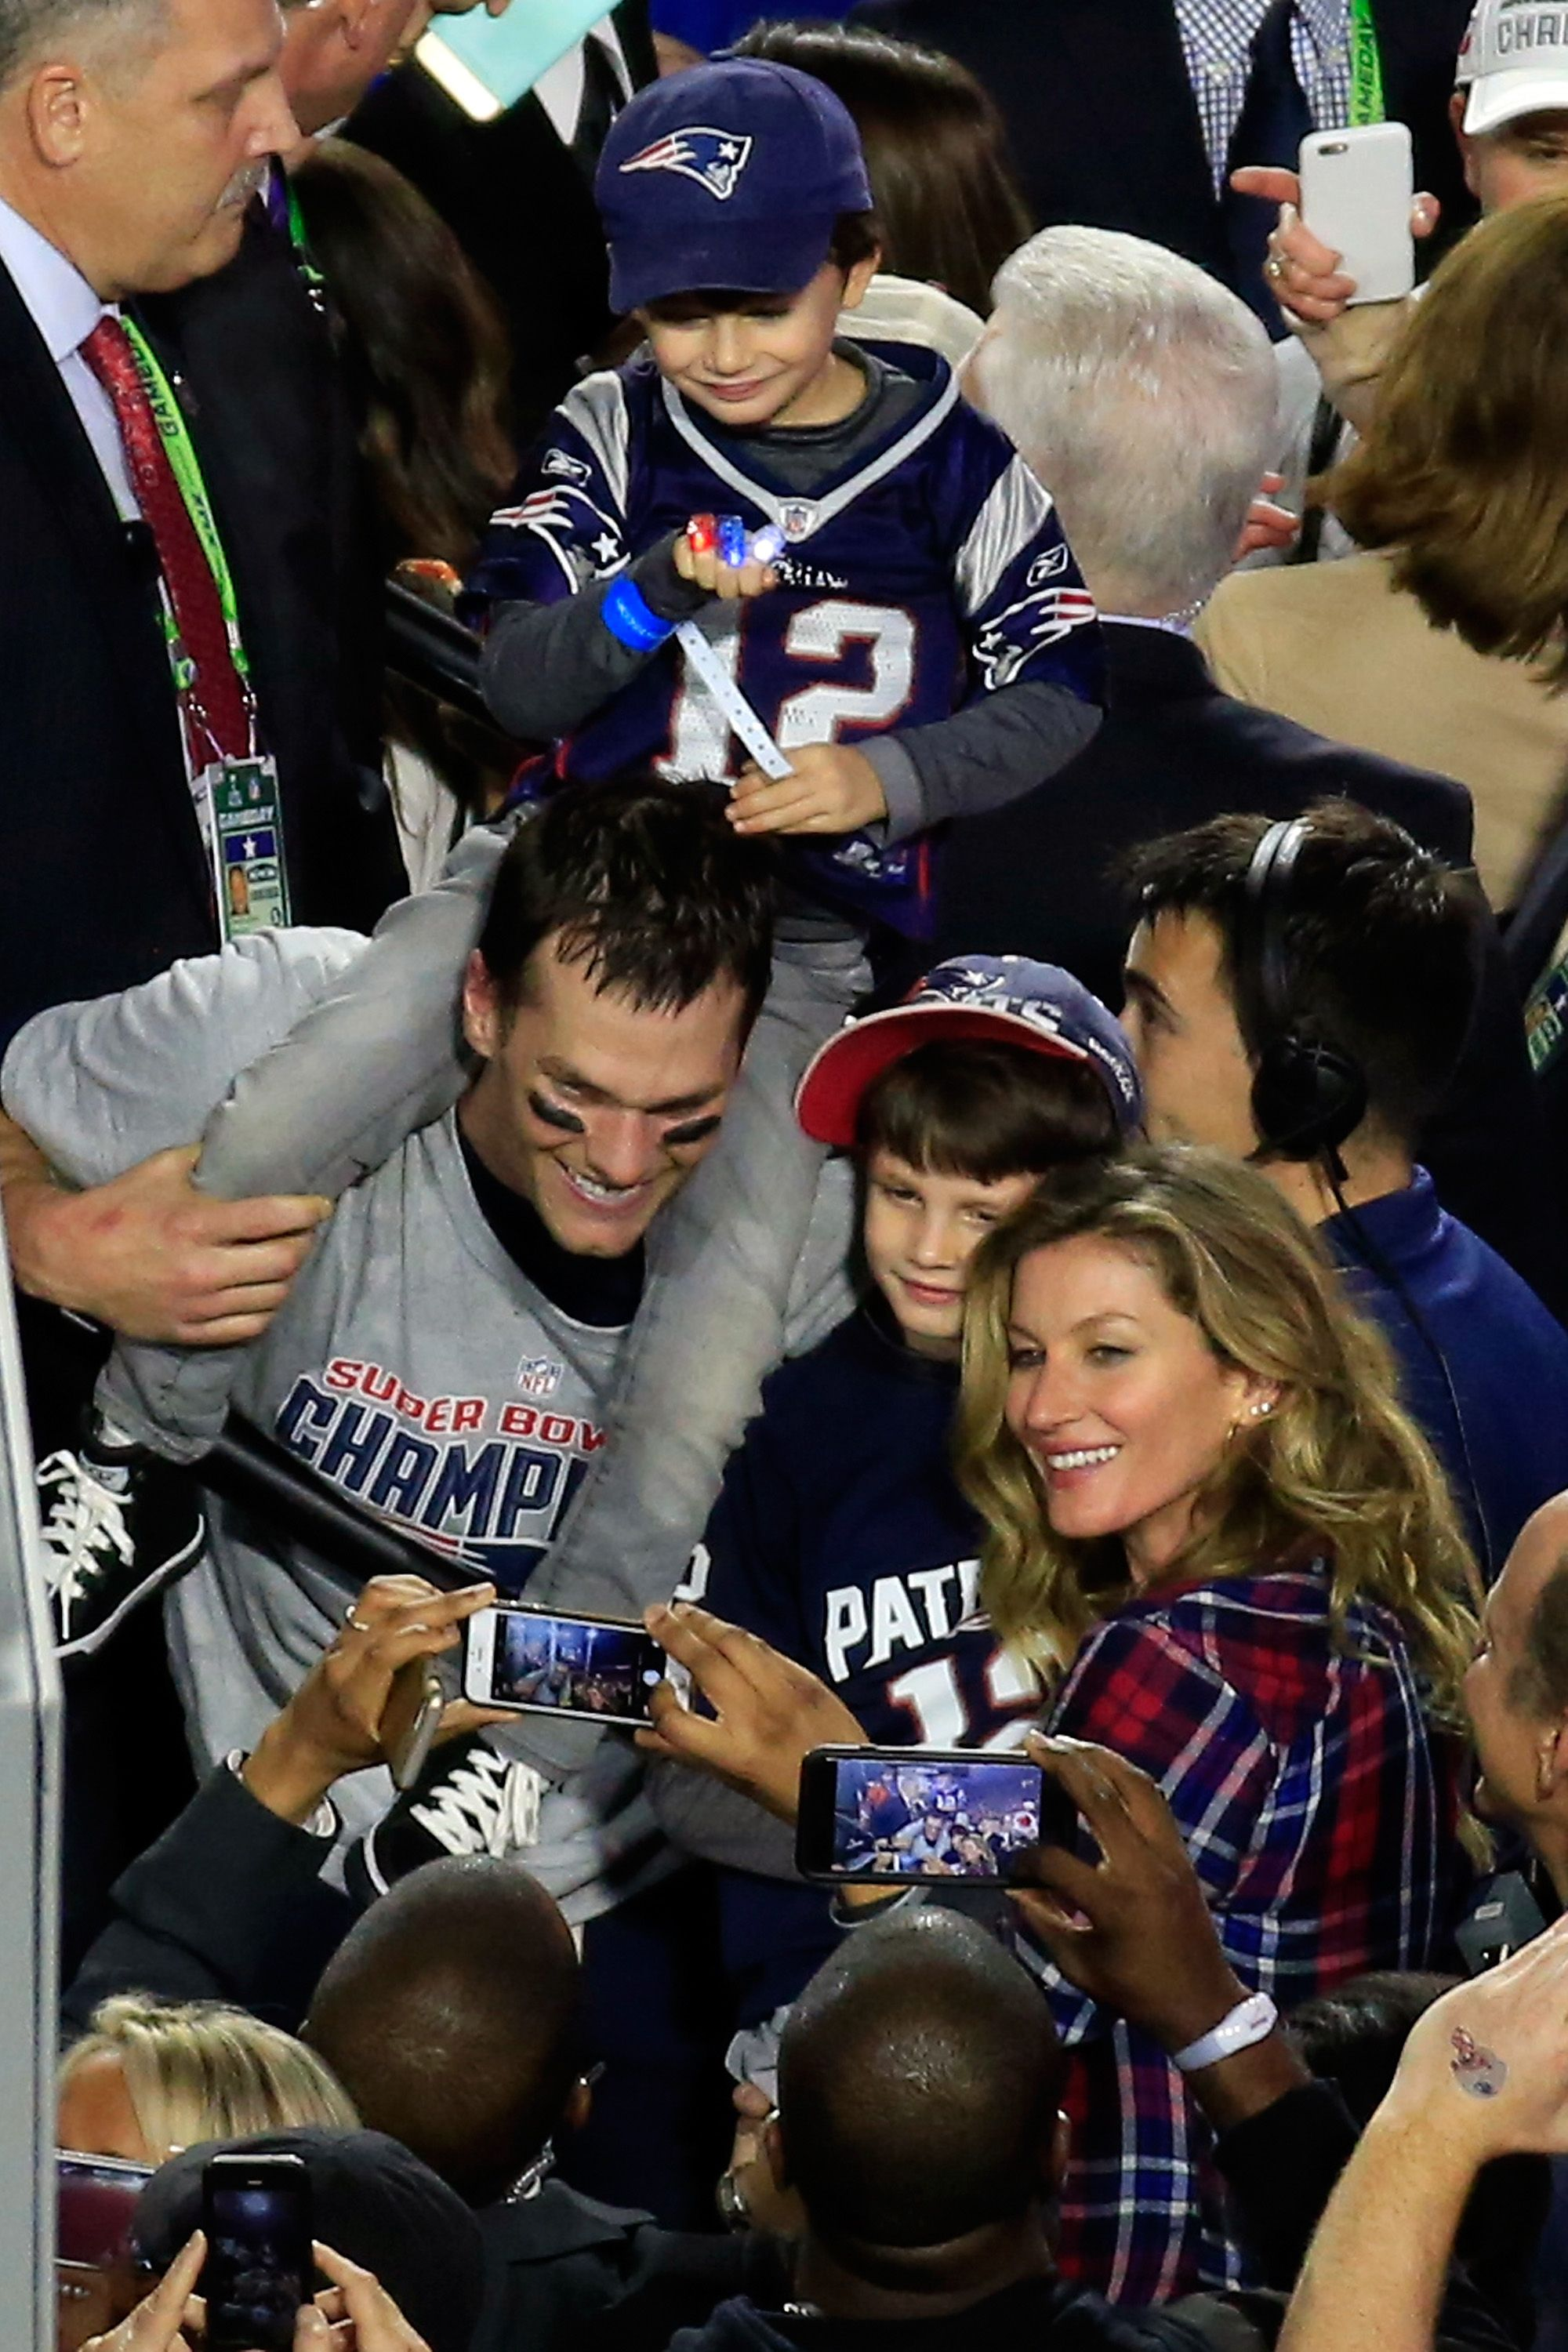 Tom Gisele Celebrate Super Bowl Win With Perfect Brady Family Photo New England Patriots Tom Brady New England Patriots Football